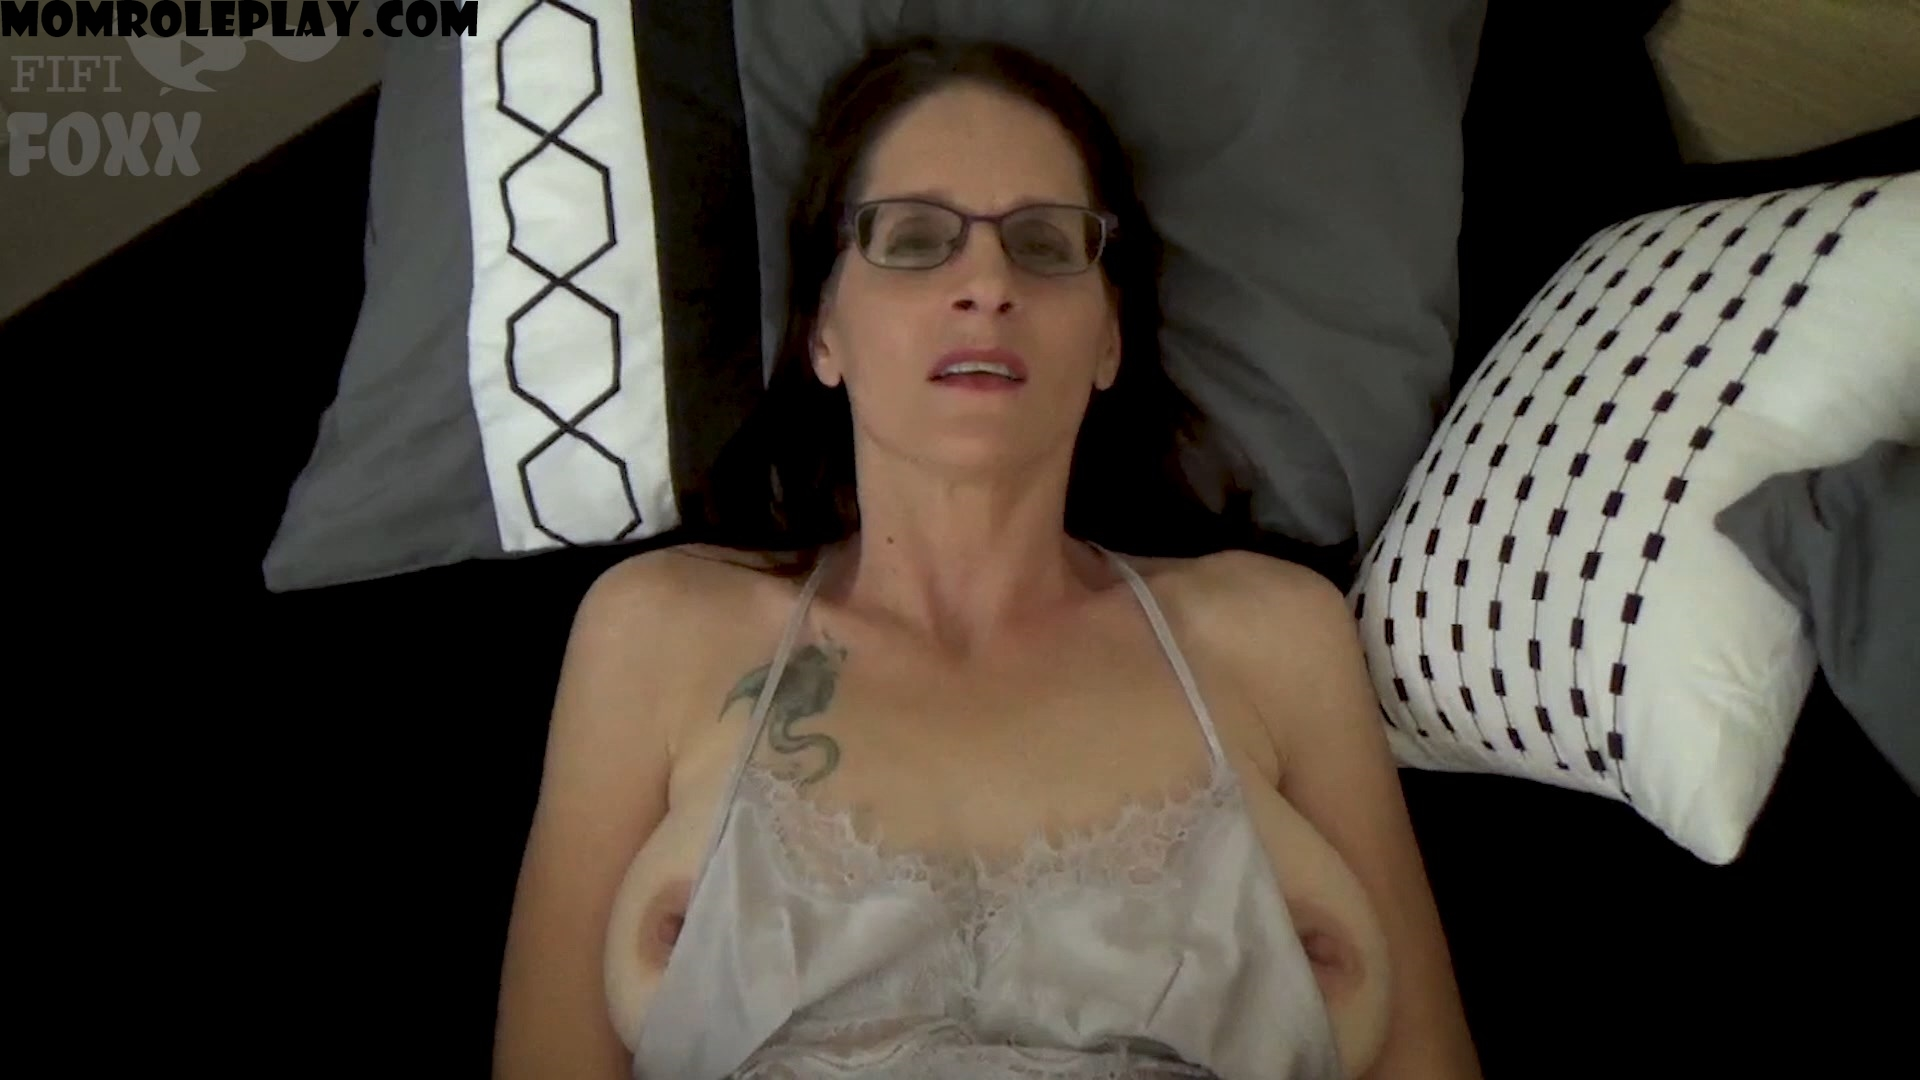 Fifi Foxx Fantasies - Christina Sapphire - Keeping Mommy Warm: Mom & Son Cuddle, Accidental Erection, Mom Helps Son, POV - HD 1080p